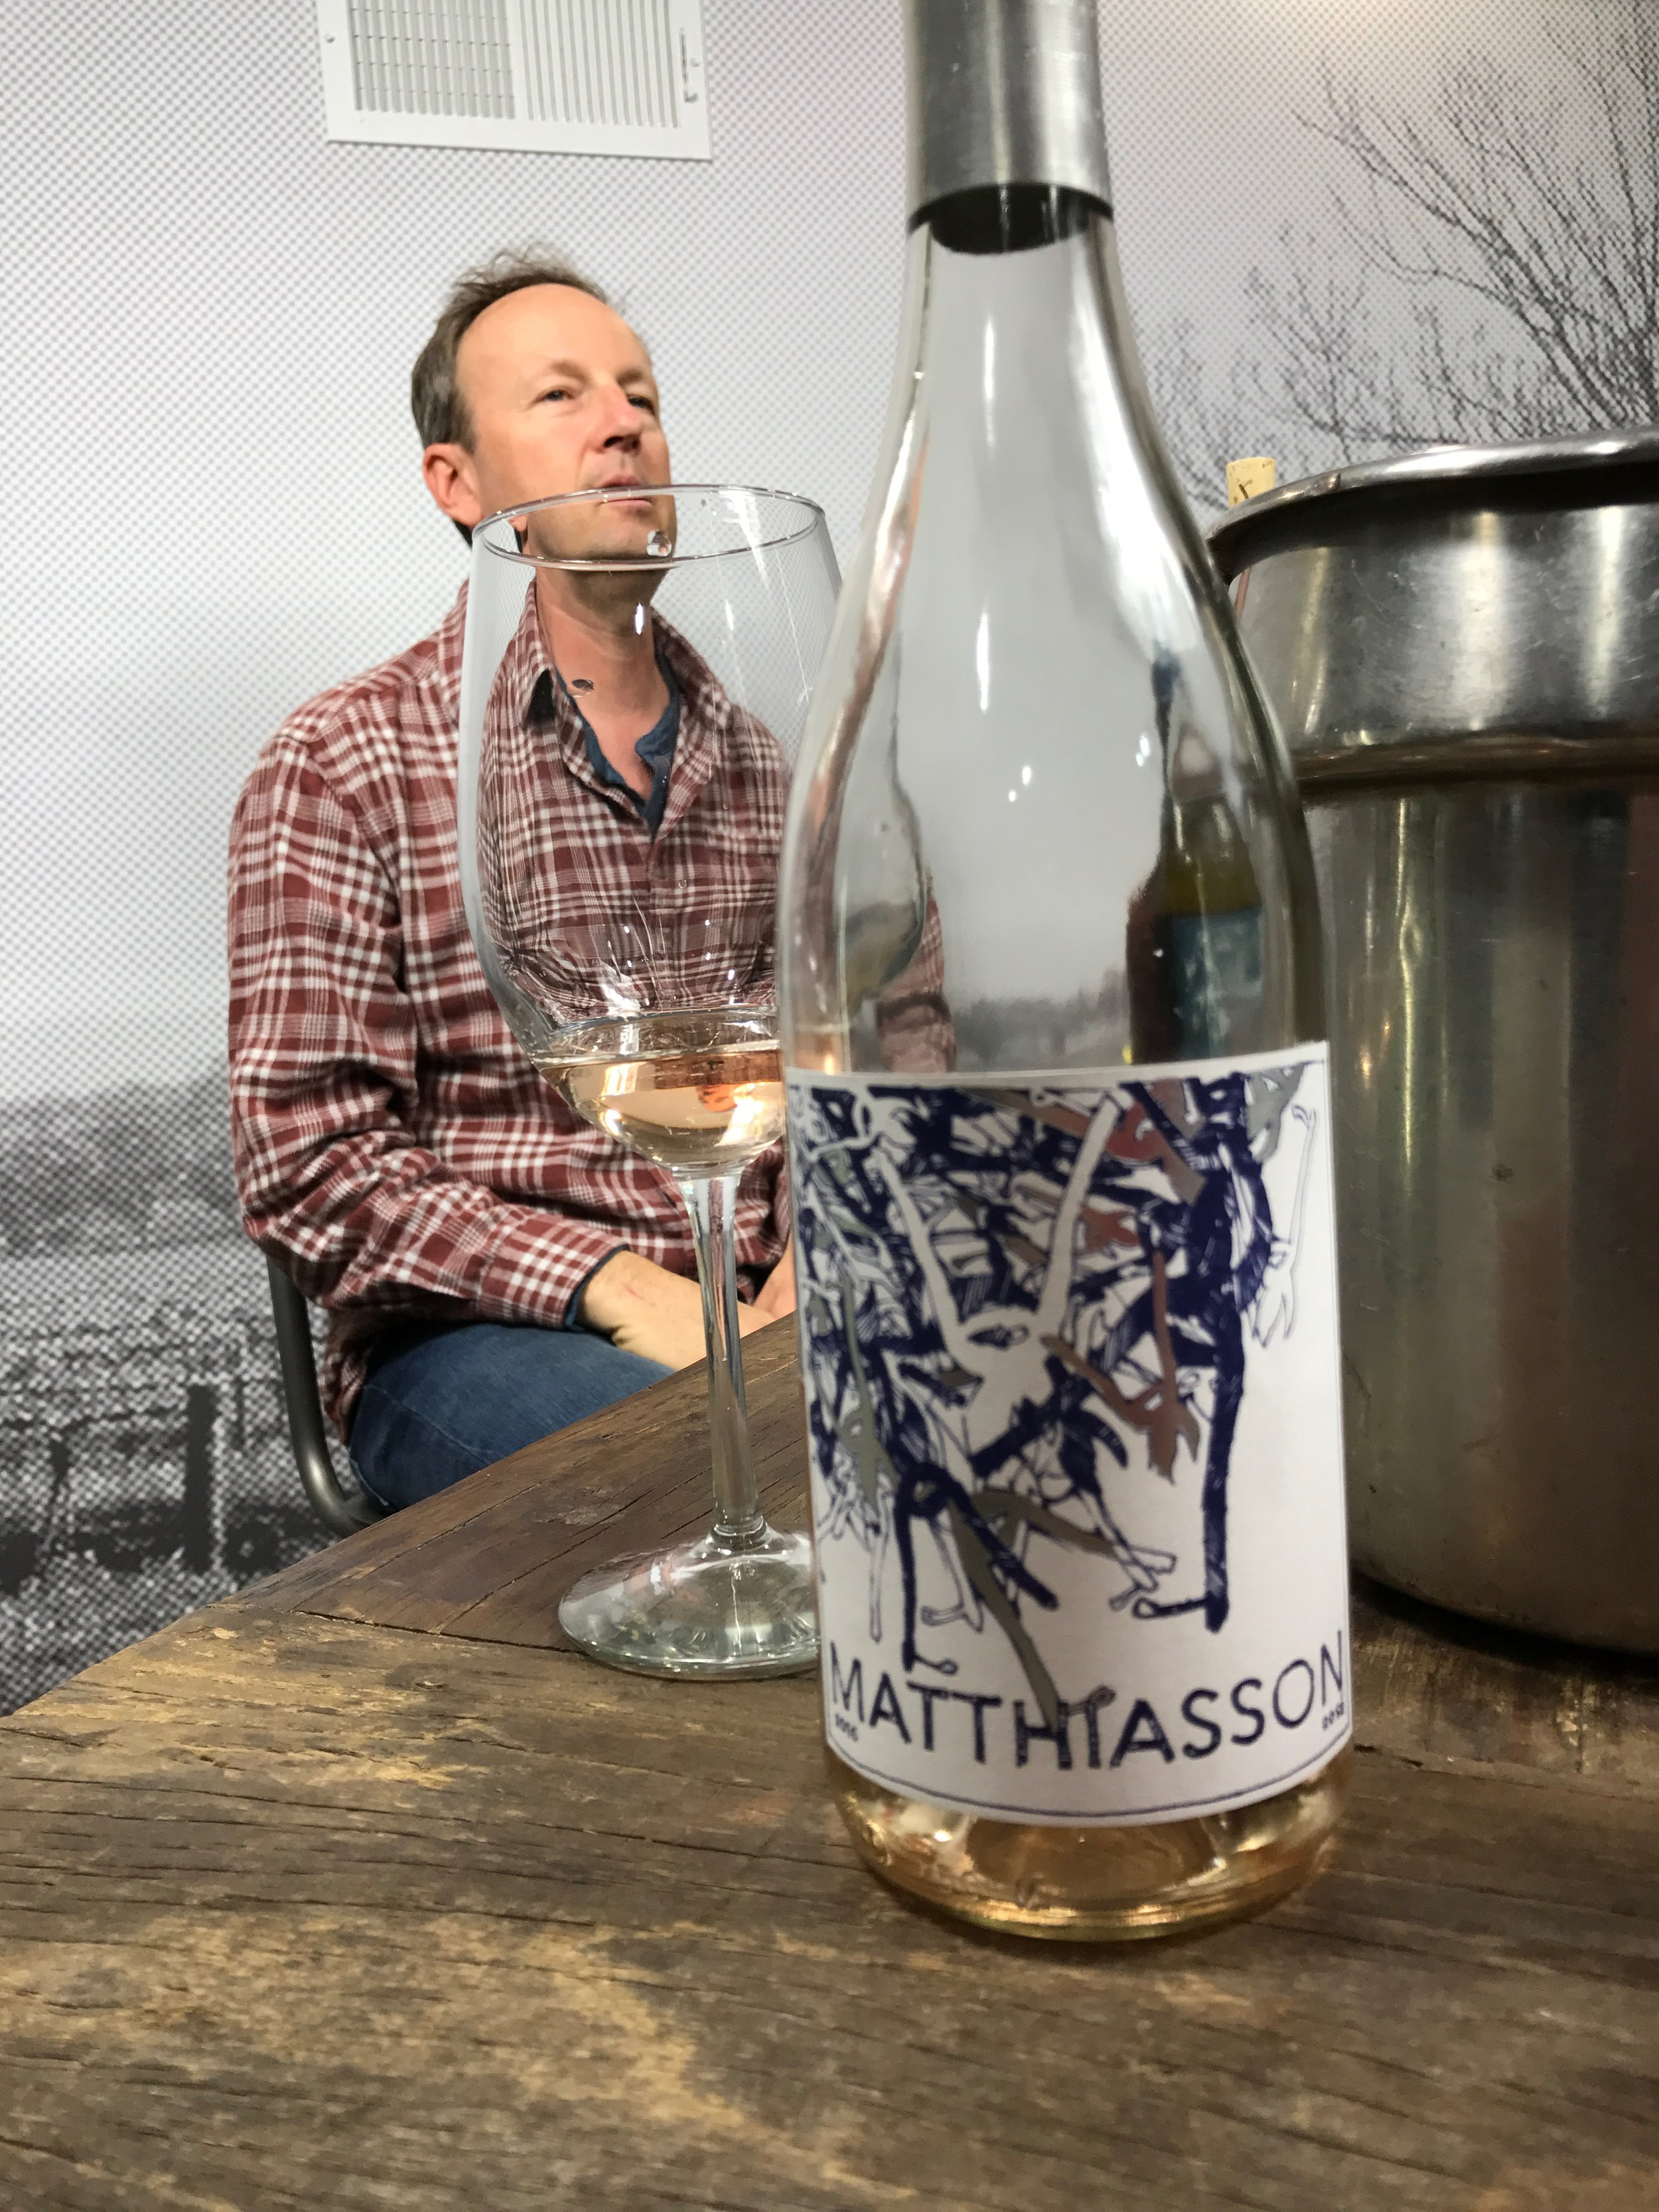 That's Steve  Matthiasson (above)with his 2016 Dry Rose Wine. It's made in California from a combination of Grenache, Syrah, Mouvèdre, and Counoise and has lots of juicy, fresh fruit flavors and it will go fabulouly with your turkey!! ($25)